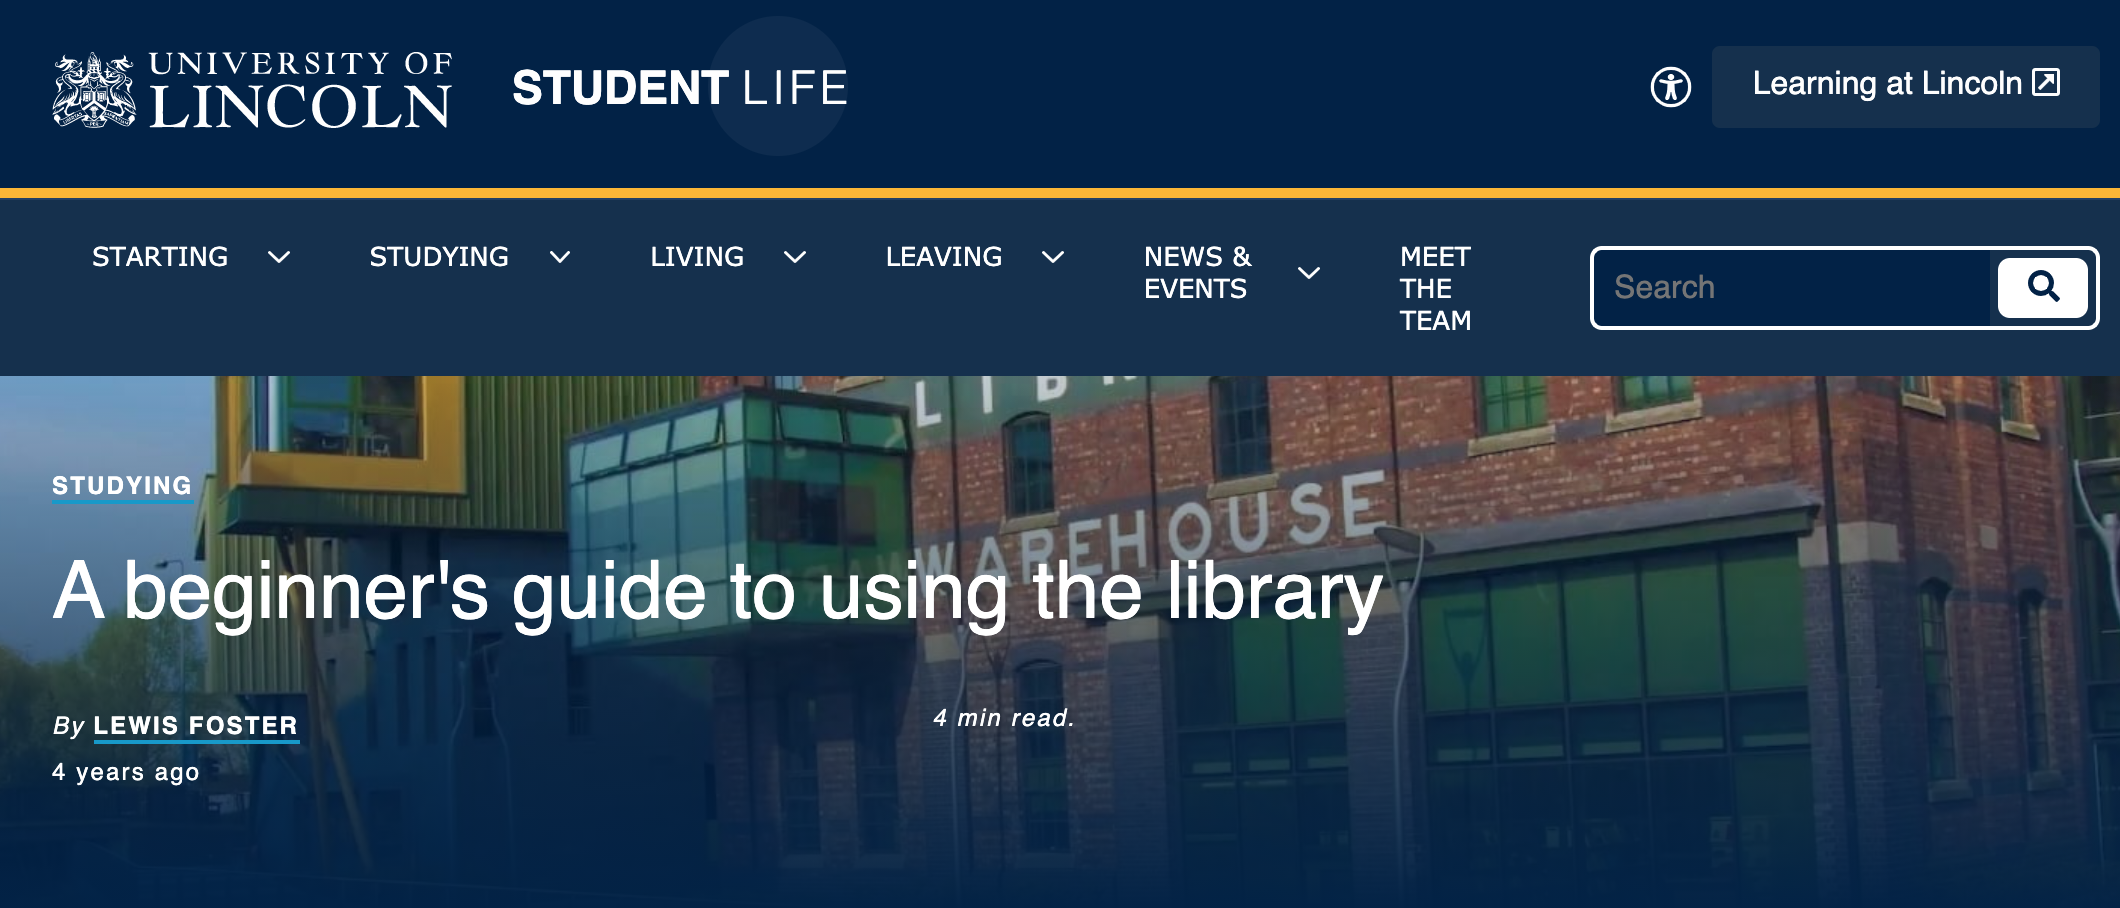 A beginner's guide to using the library